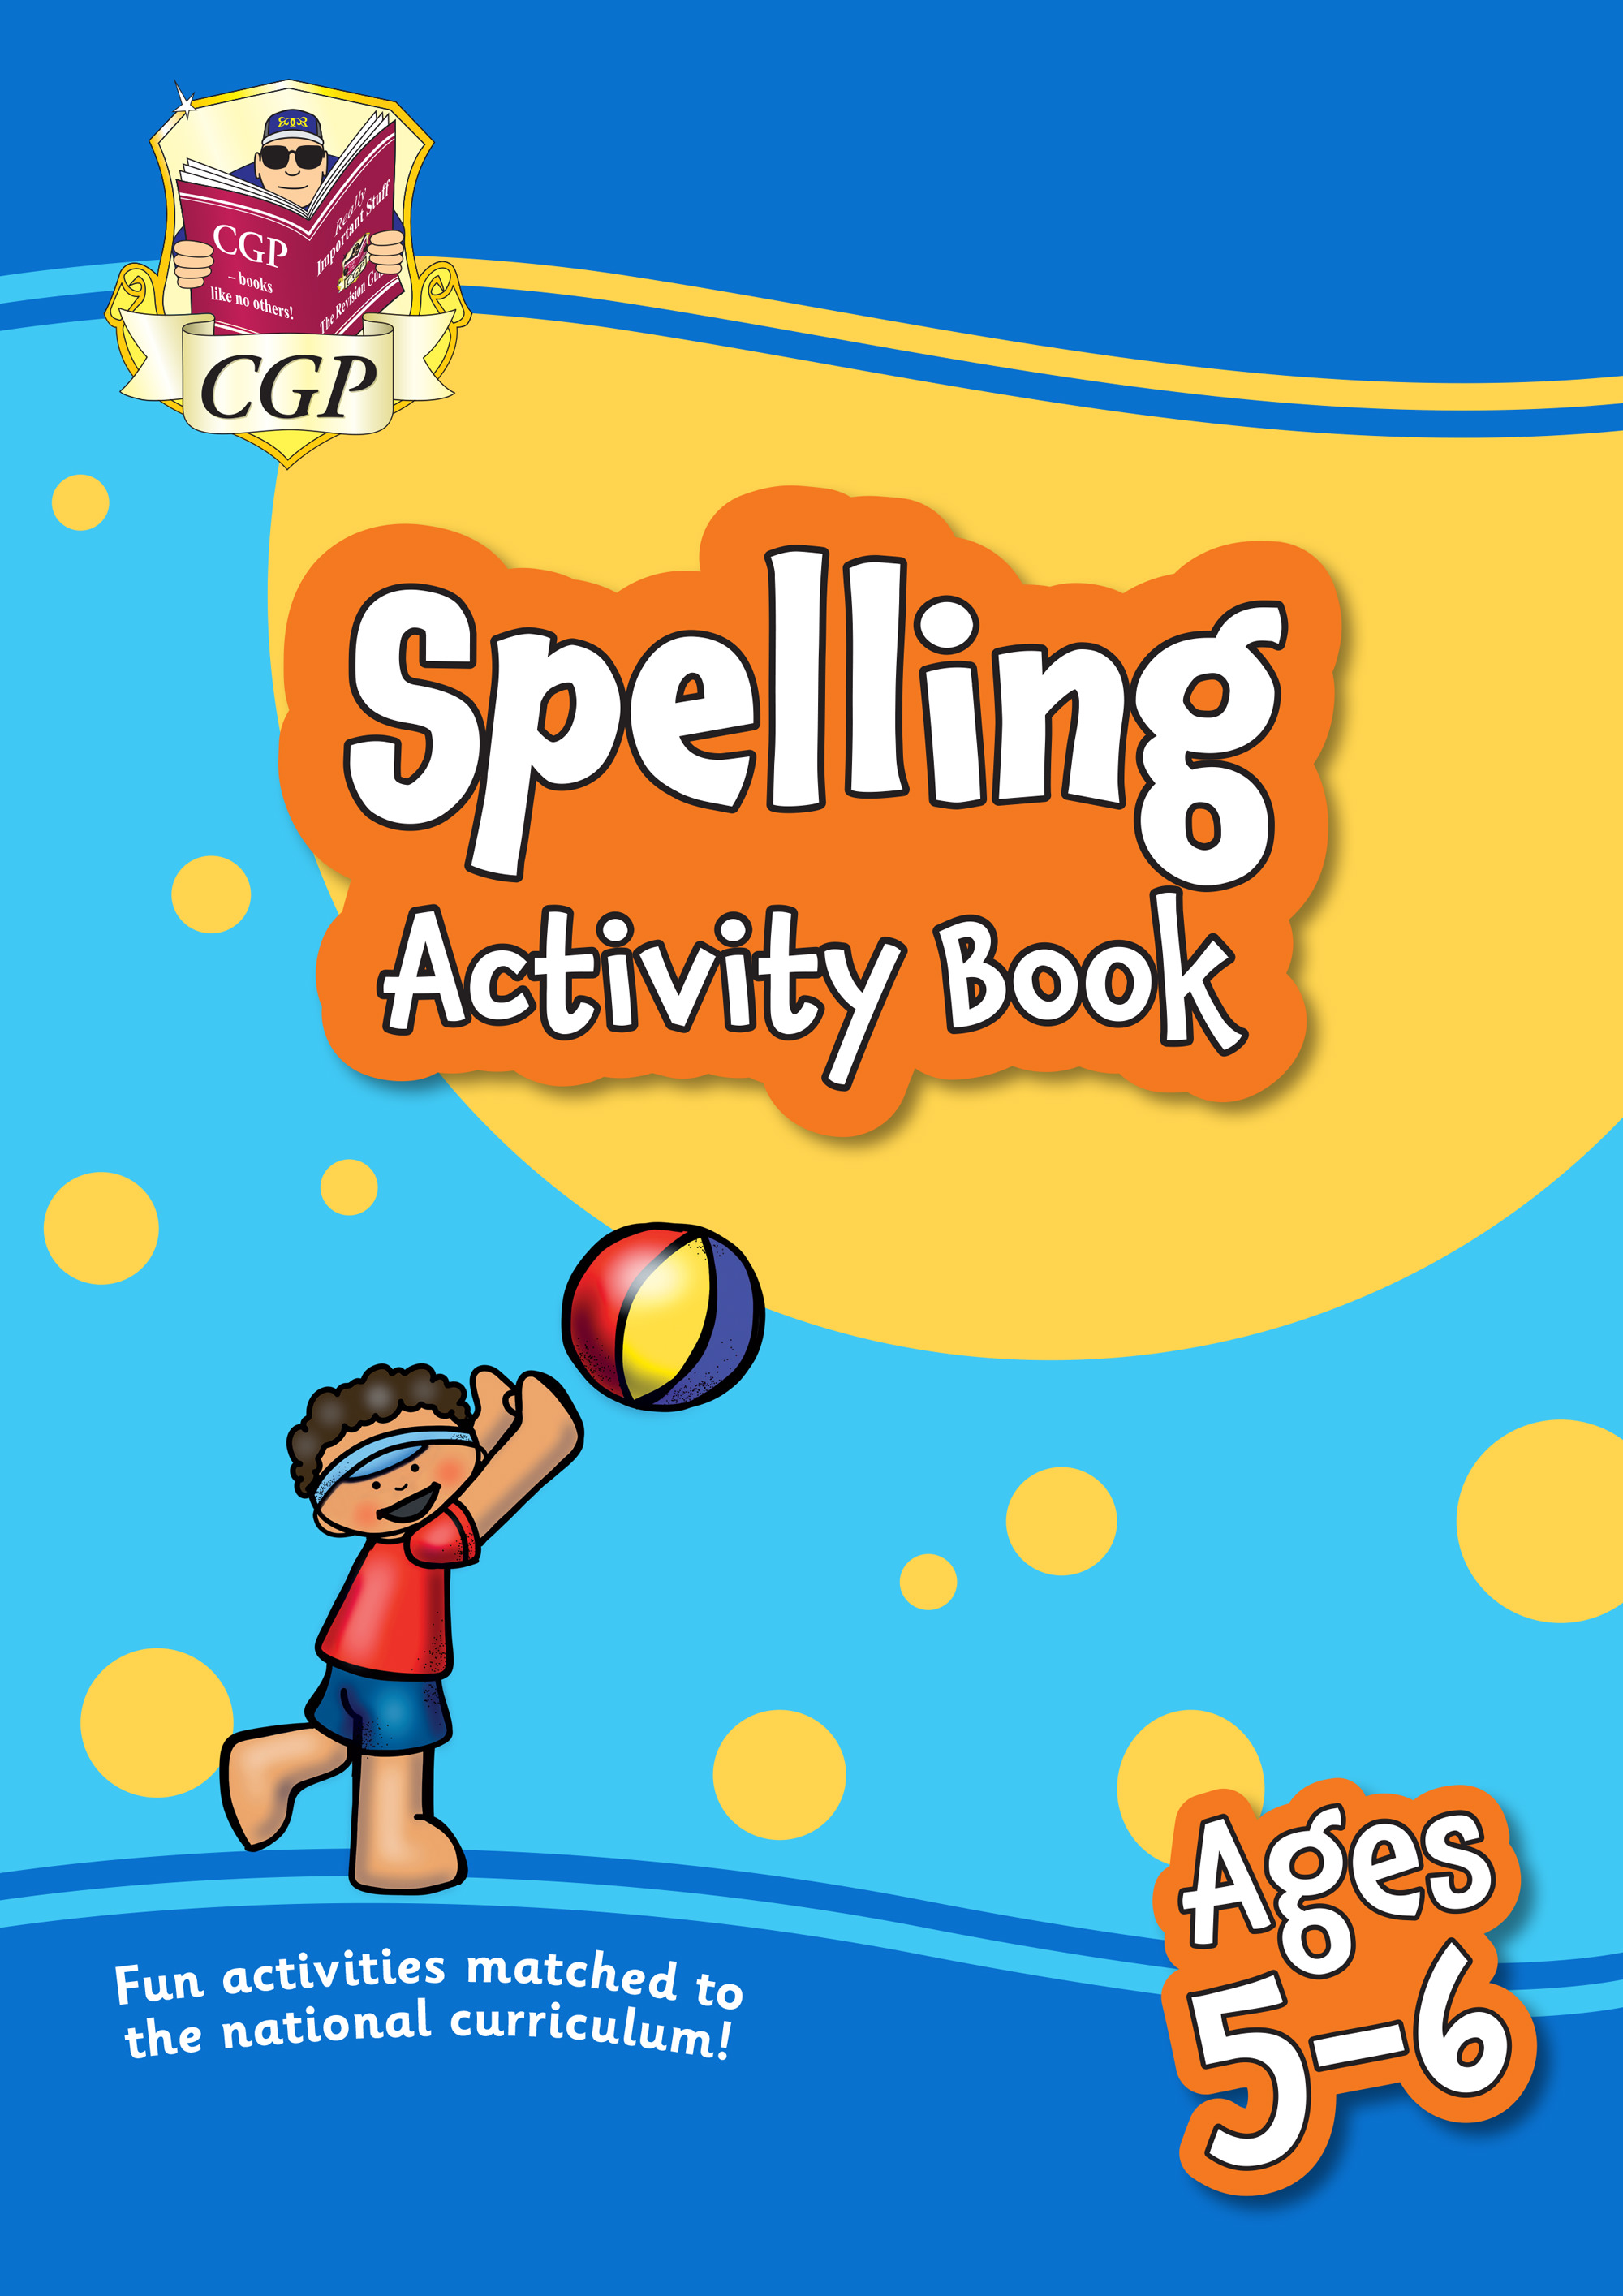 EPFS1Q11 - New Spelling Home Learning Activity Book for Ages 5-6